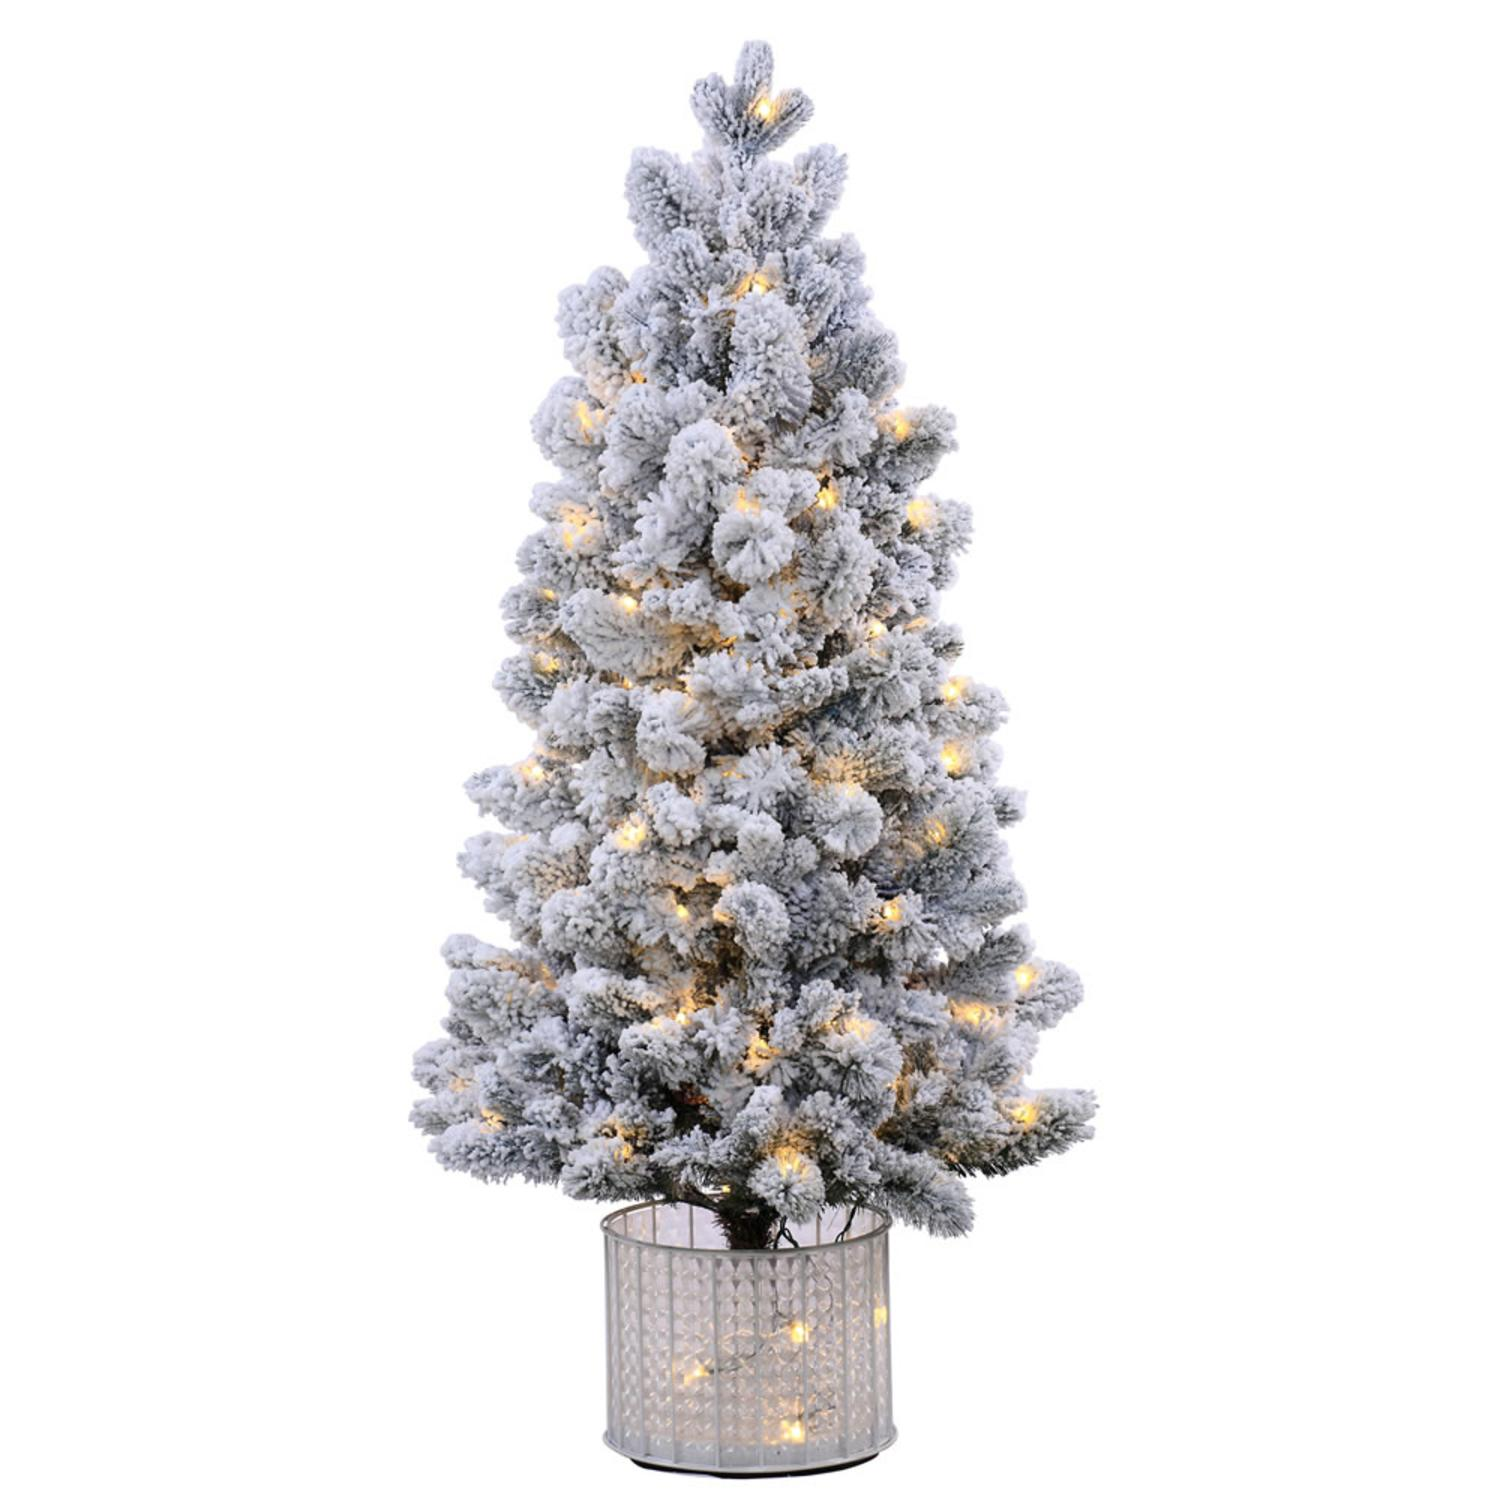 5' Pre-Lit Potted Flocked Morgan Spruce Artificial Christmas Tree -Warm Wht LED Lights